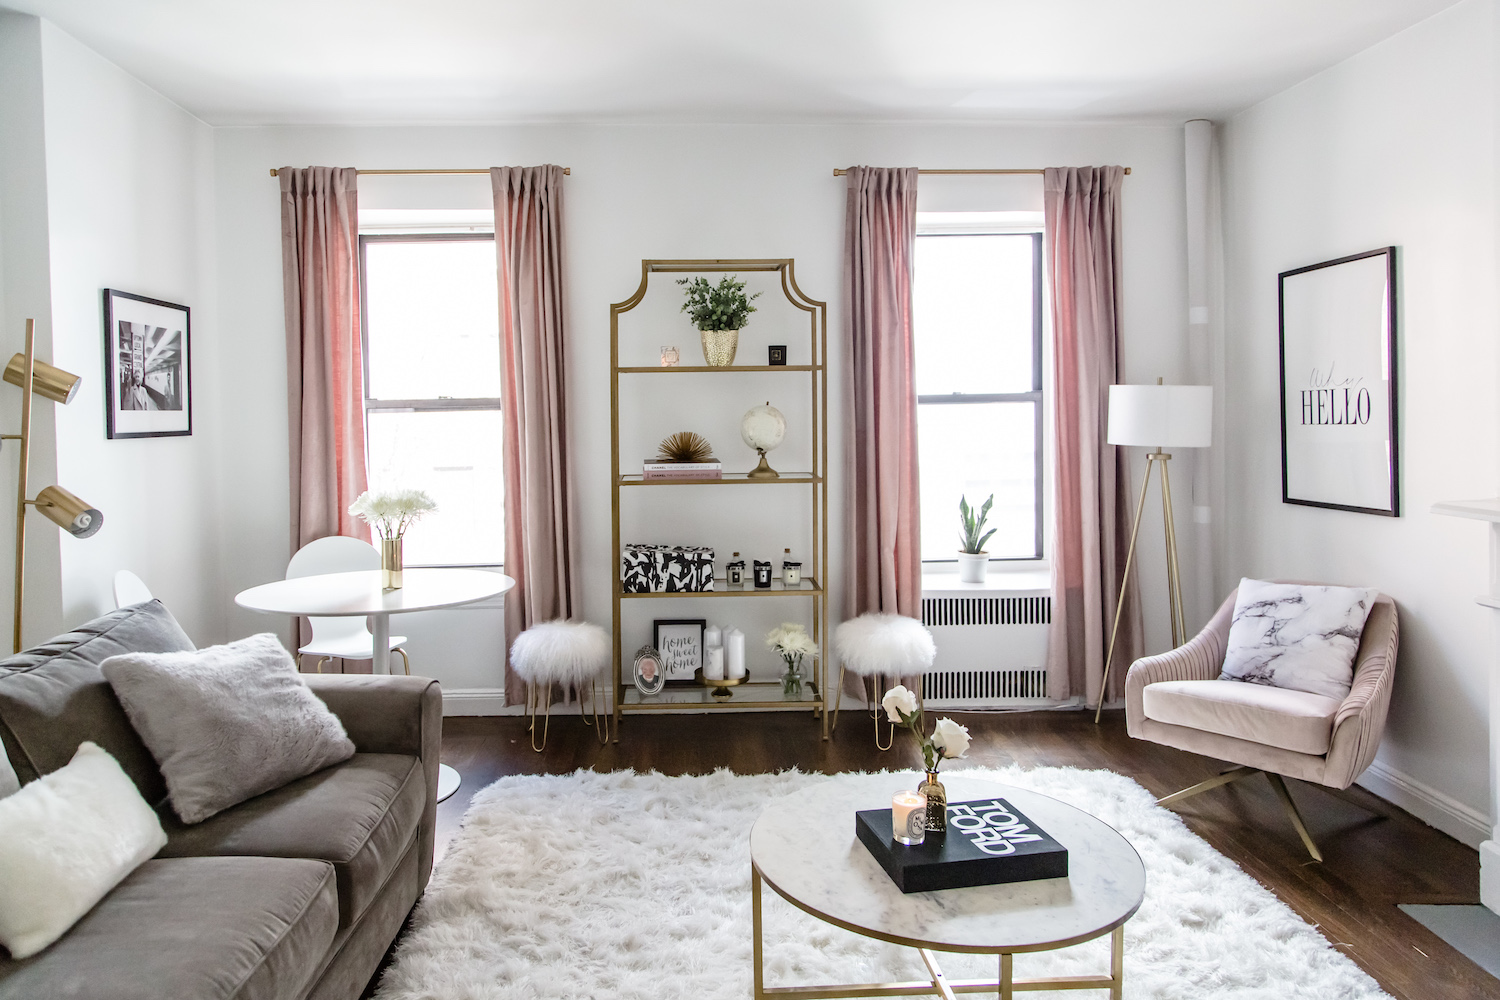 Living room tour living room transformation nyc for Living room decorating ideas nyc